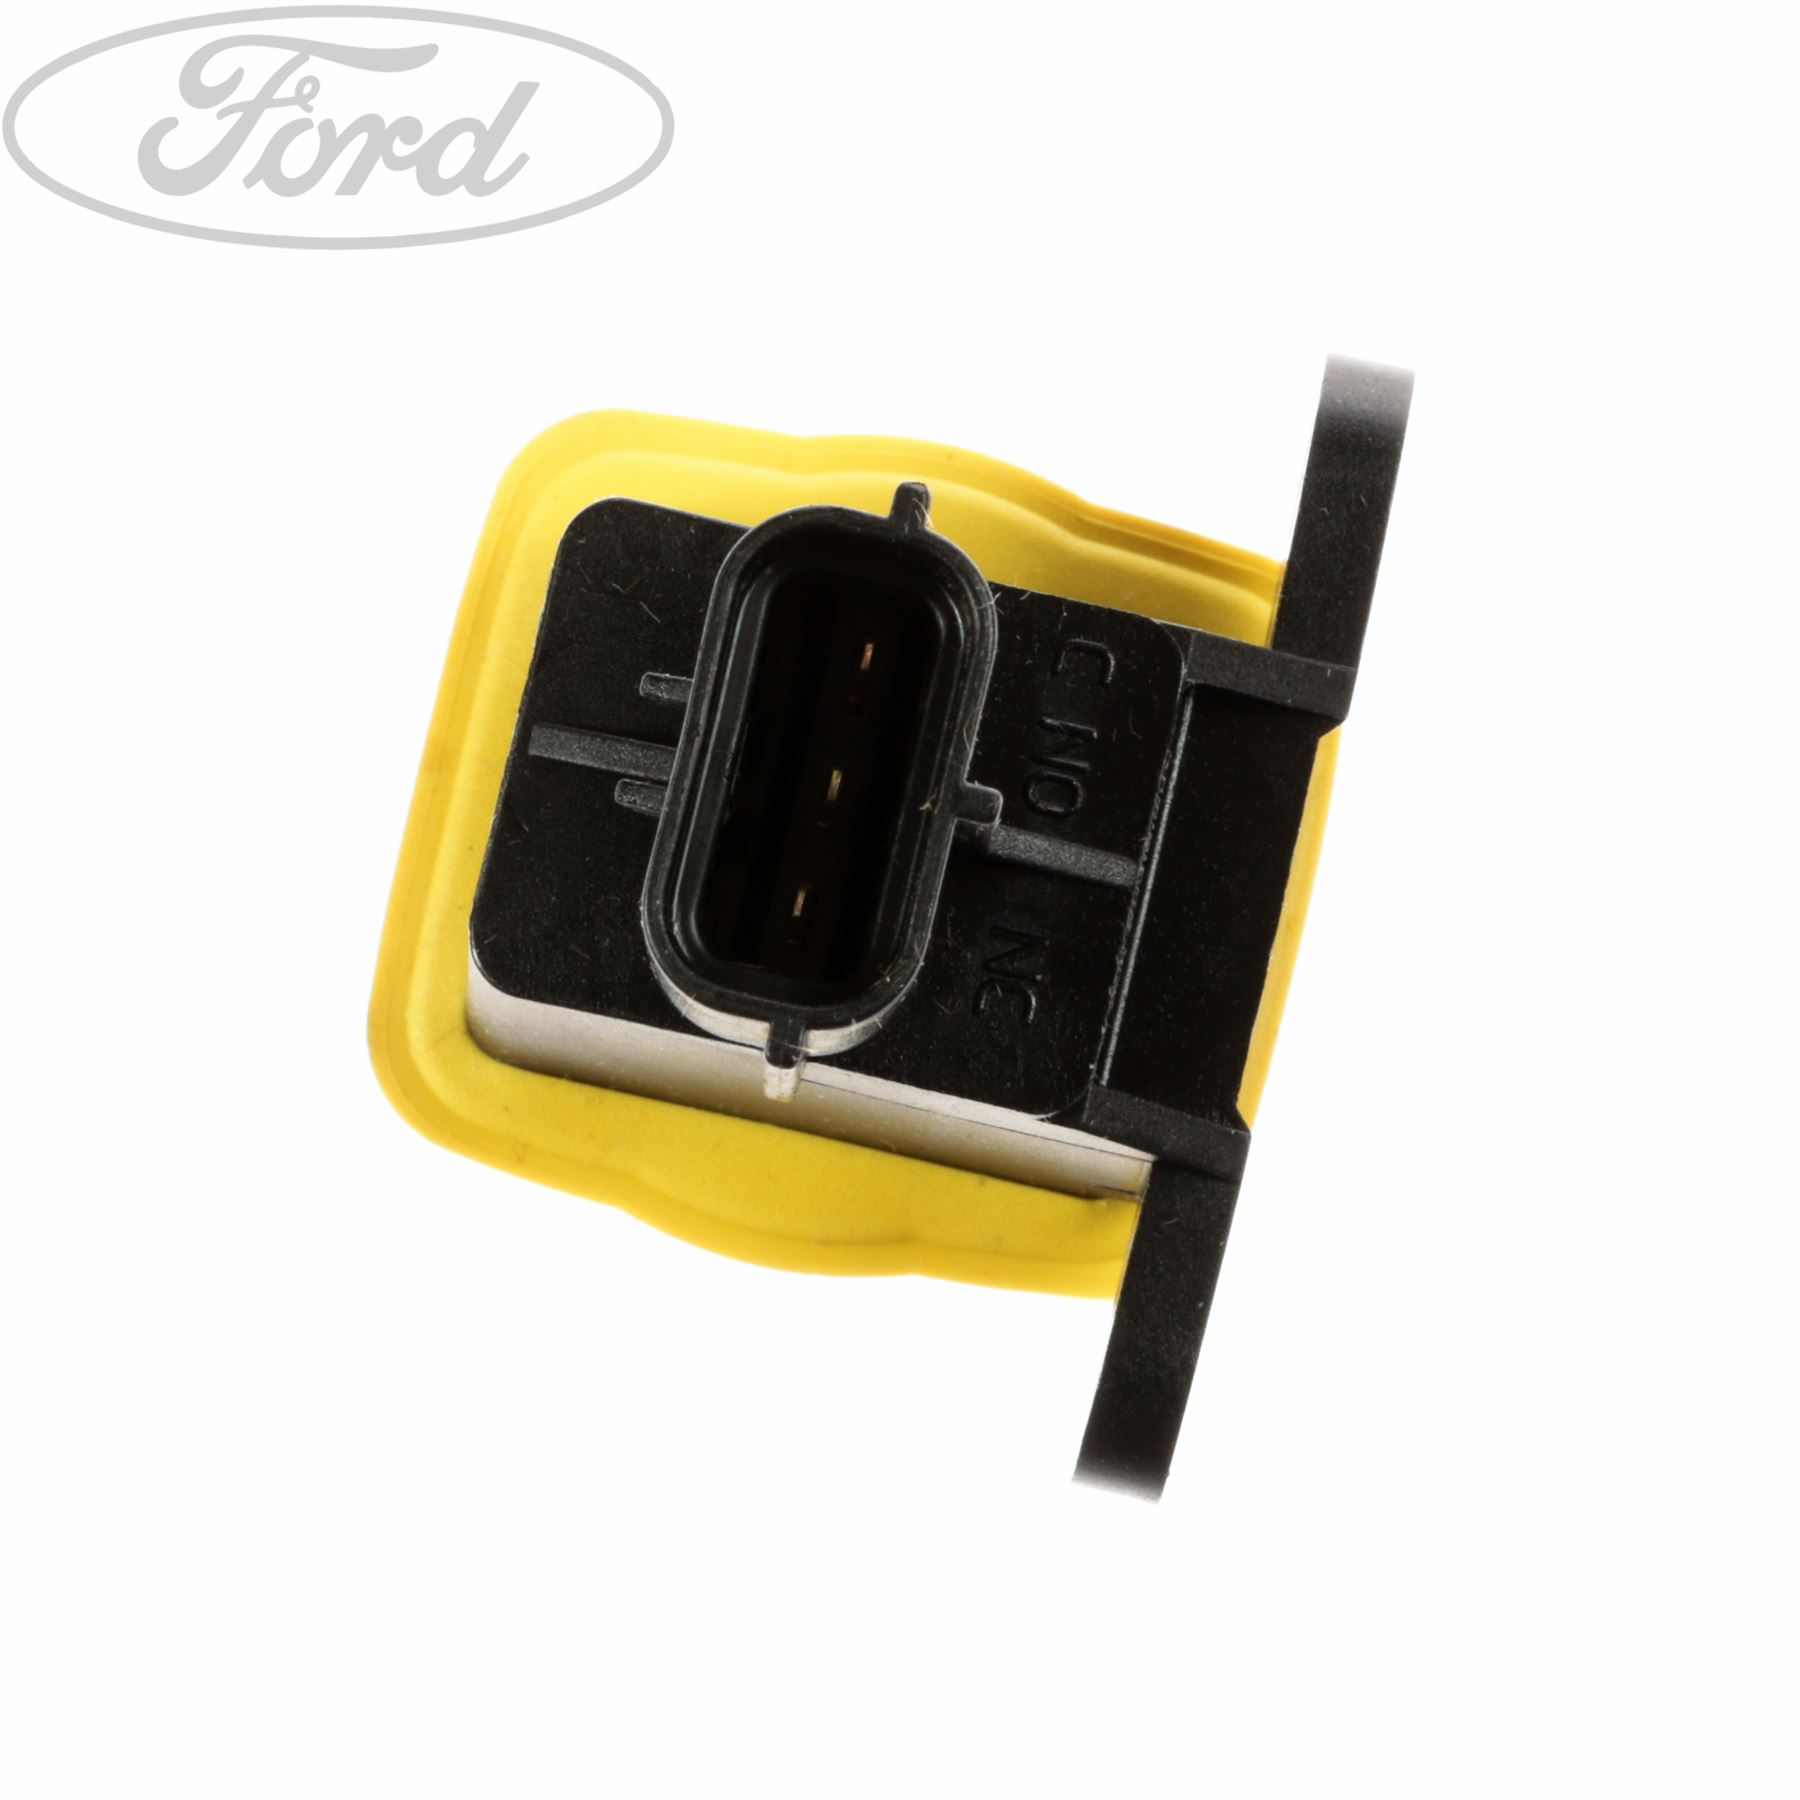 Ford Fusion: Fuel cut-off switch